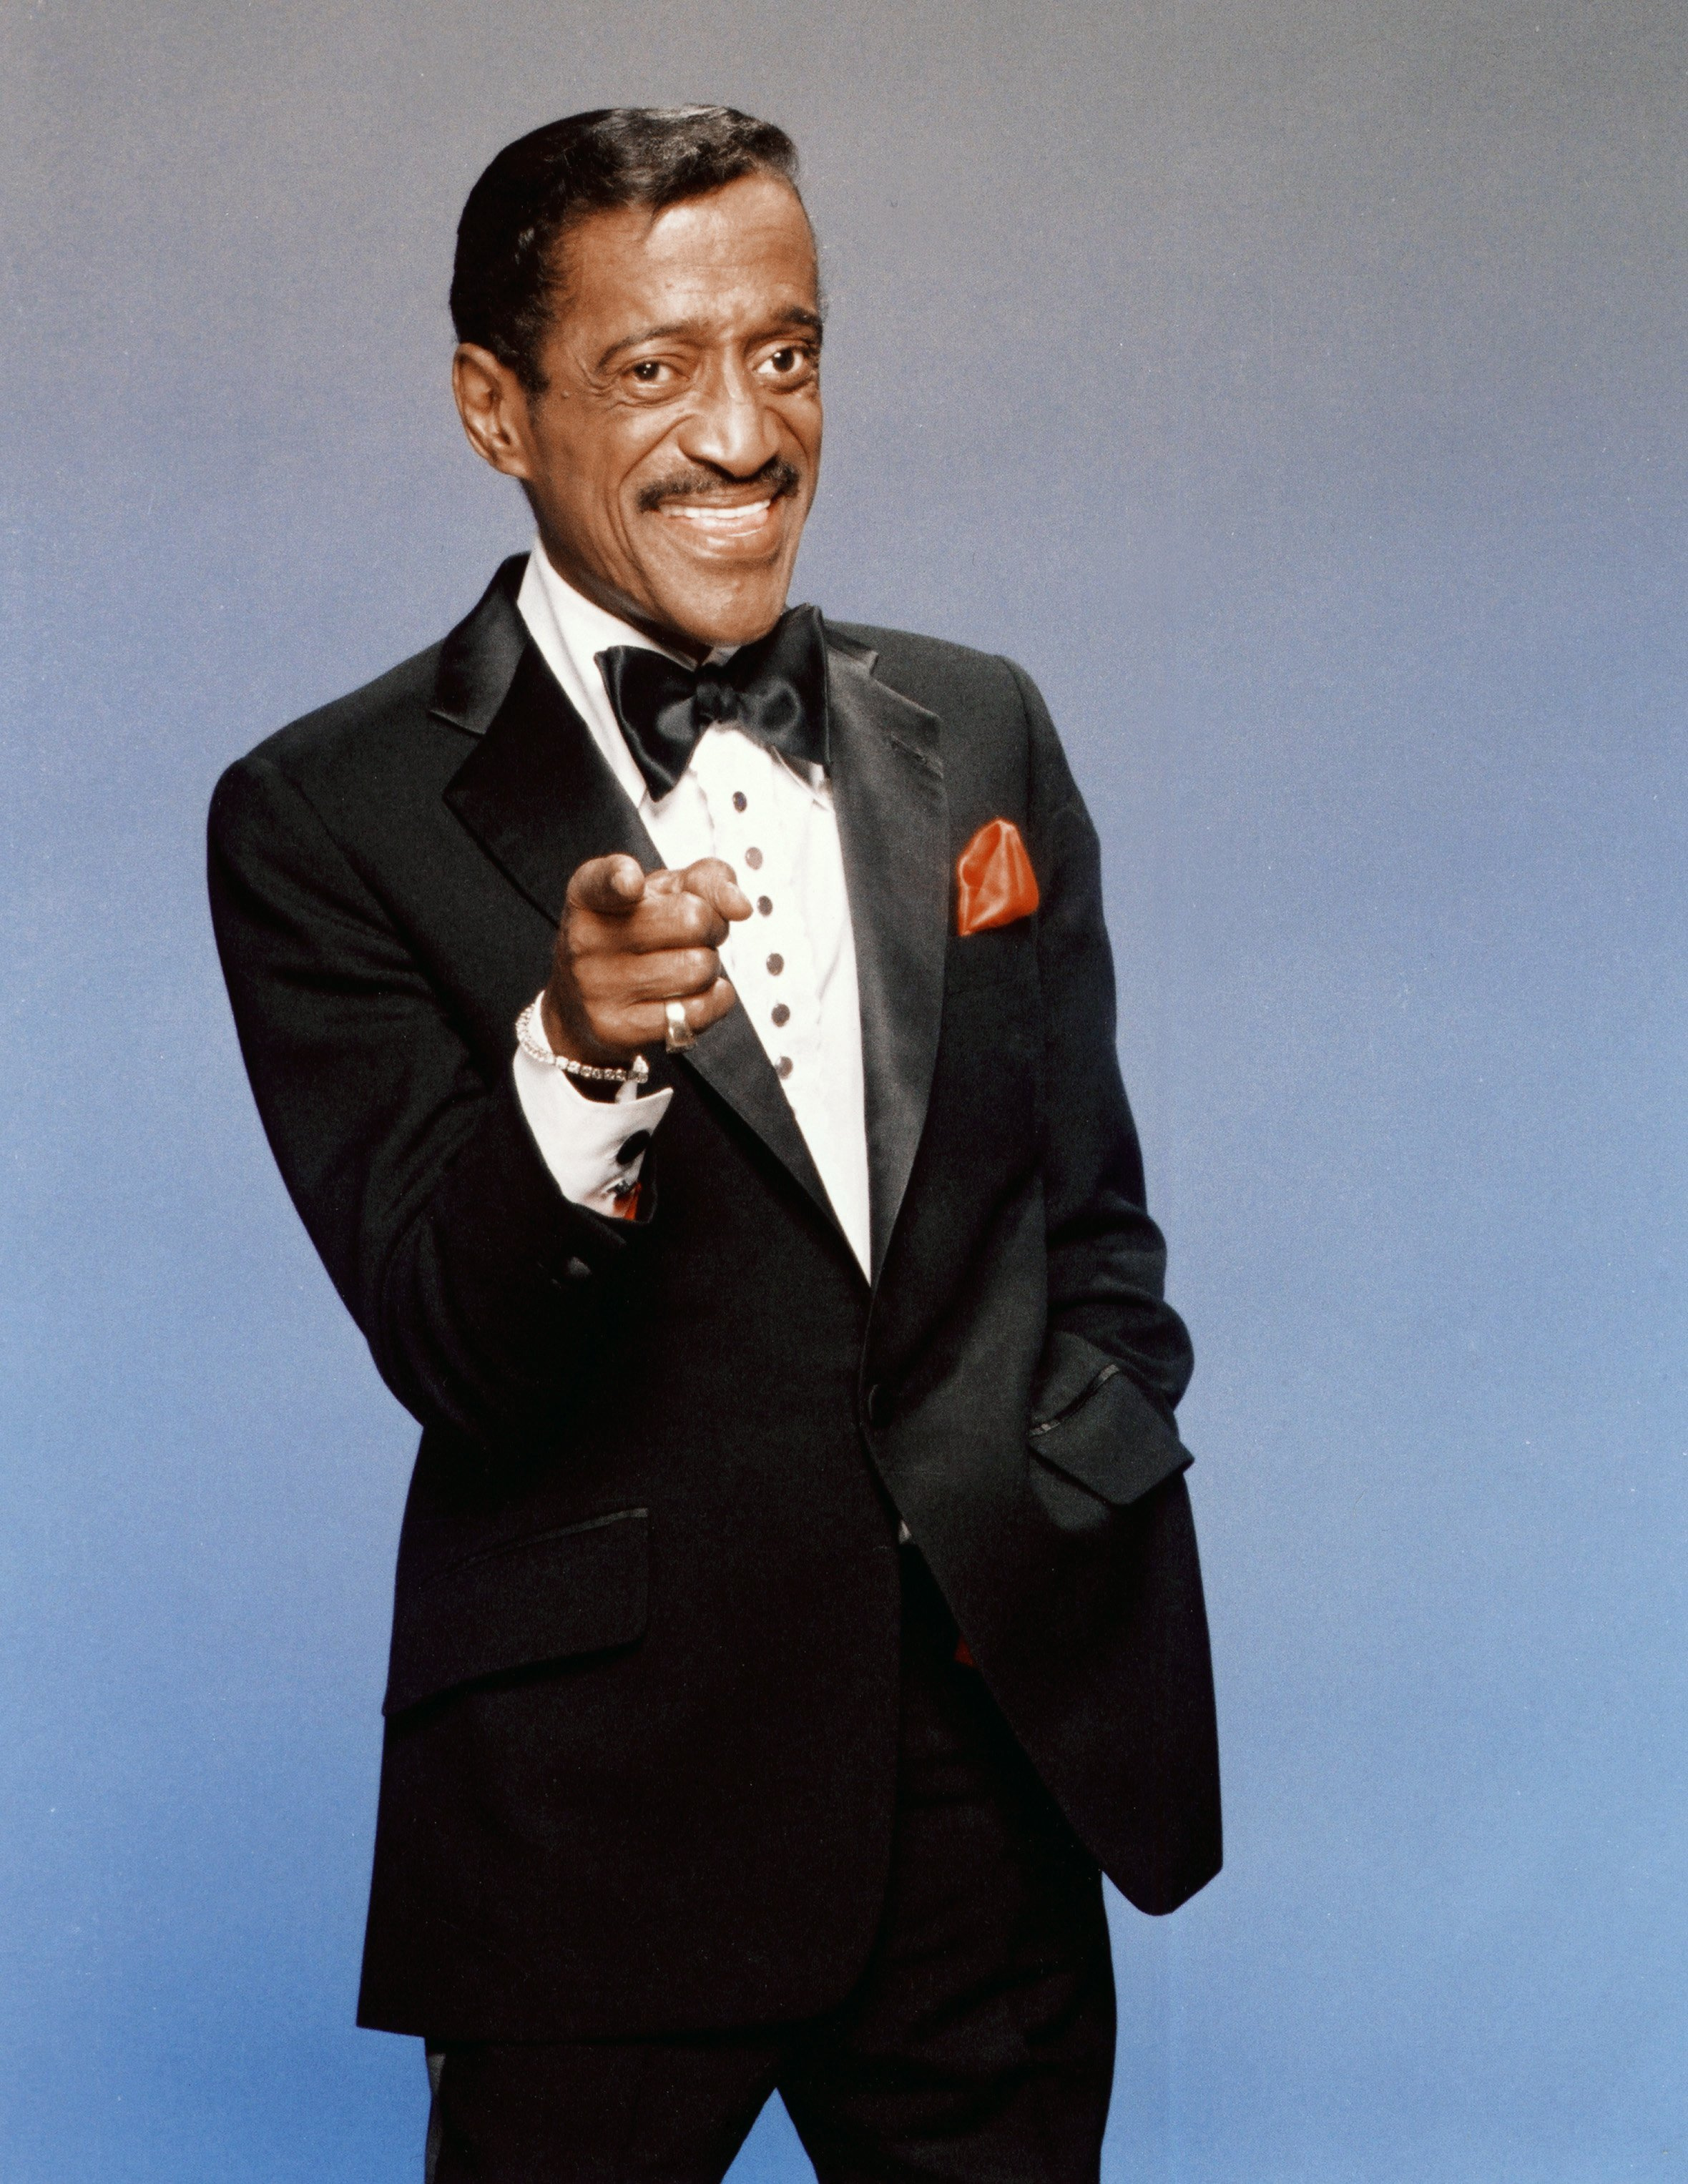 Actor Sammy Davis Jr. poses for a portrait in 1988 in Los Angeles, California.   Source: Getty Images